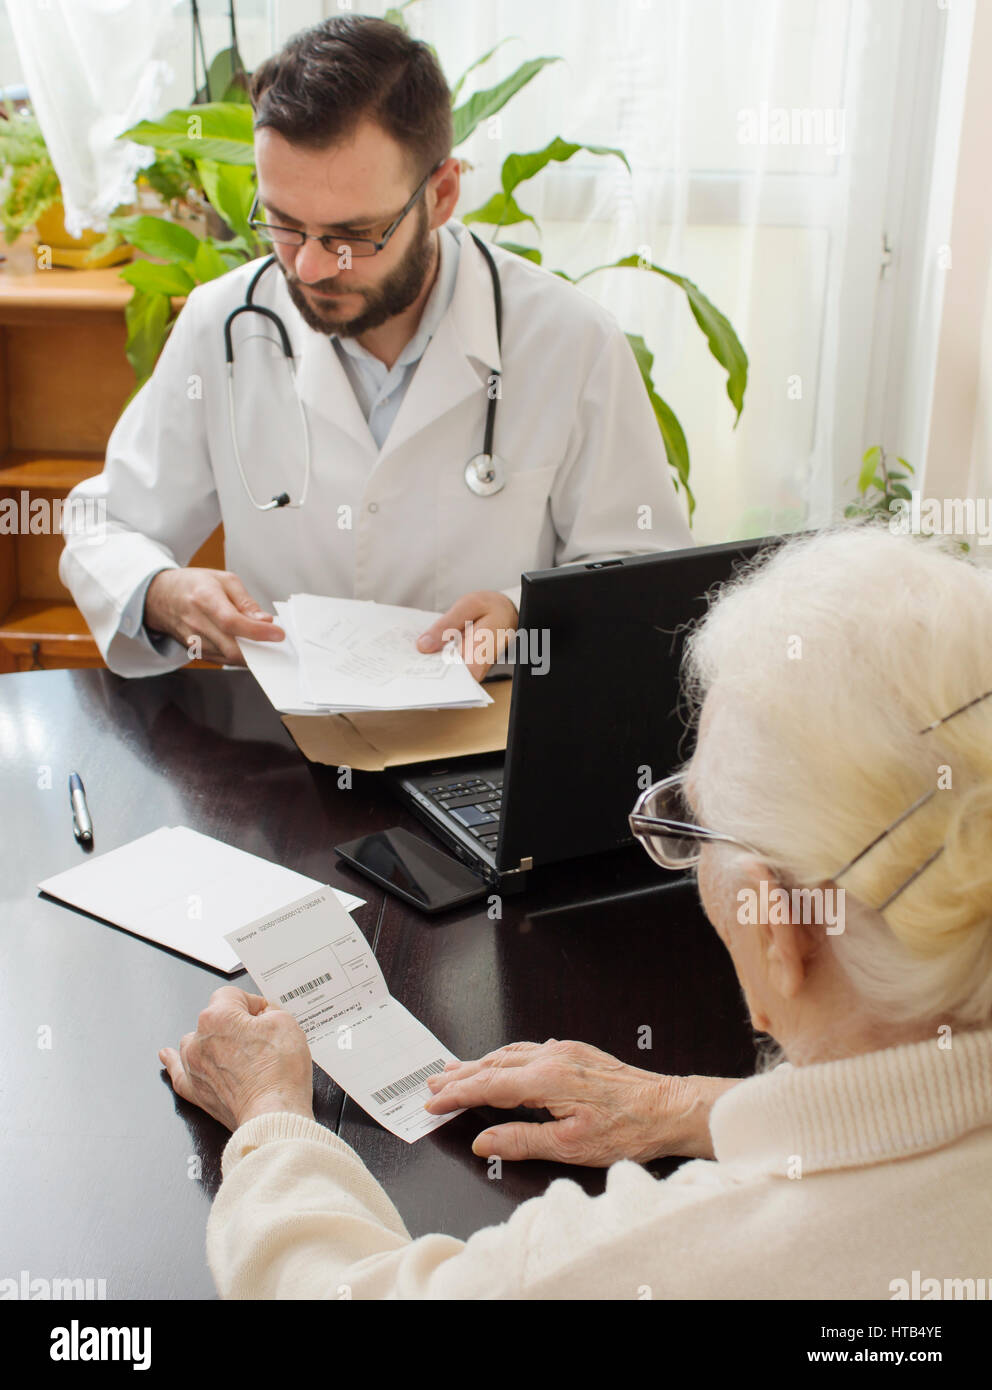 geriatrician doctor with a patient in his office. Old woman at the doctor geriatrician. - Stock Image